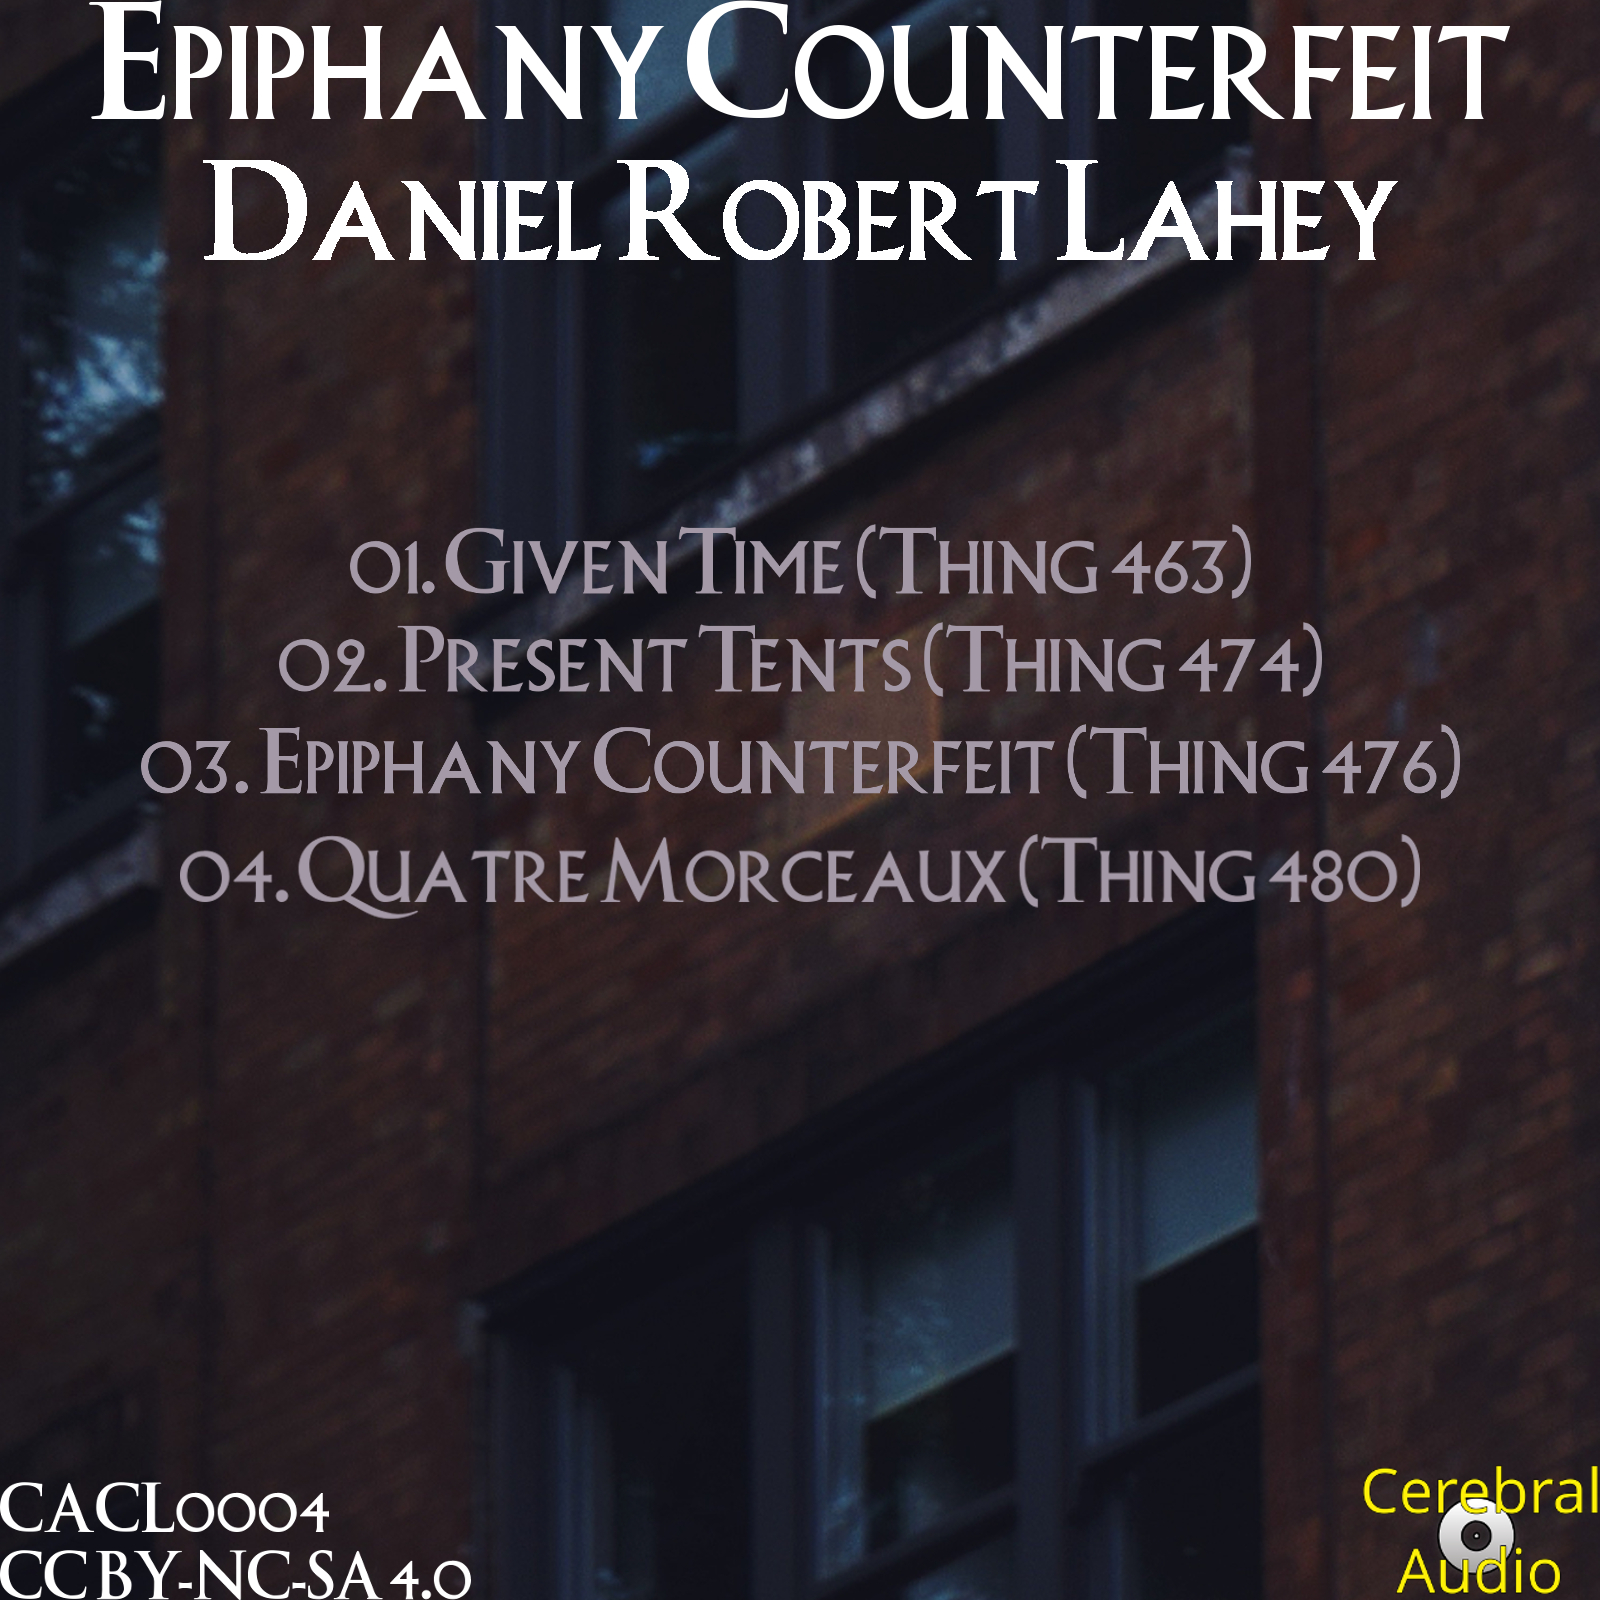 Epiphany Counterfeit